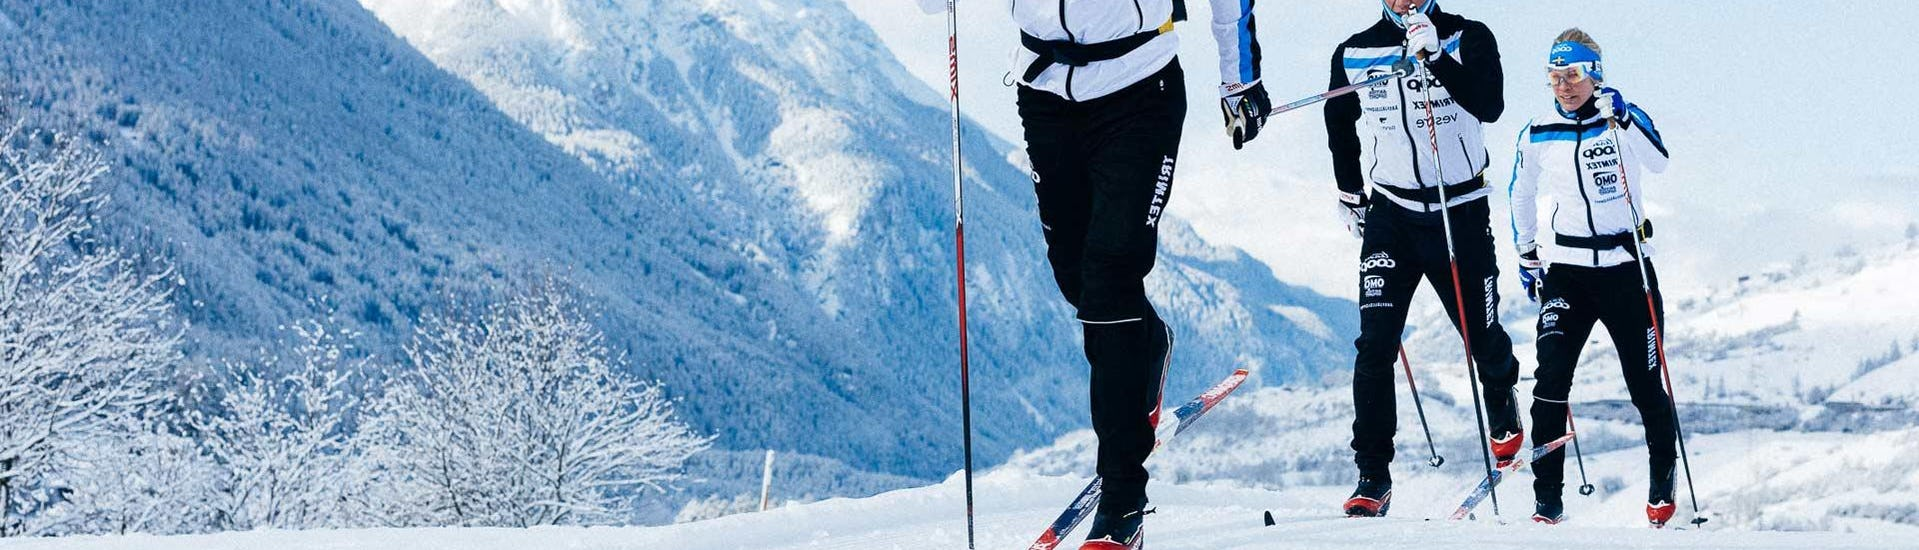 """A group of skiers is enjoying the magnificent landscapes during the Private Cross Country Skiing Lessons """"Classic"""" - All Levels offered by the ski school NTC Skischule Oberstdorf."""